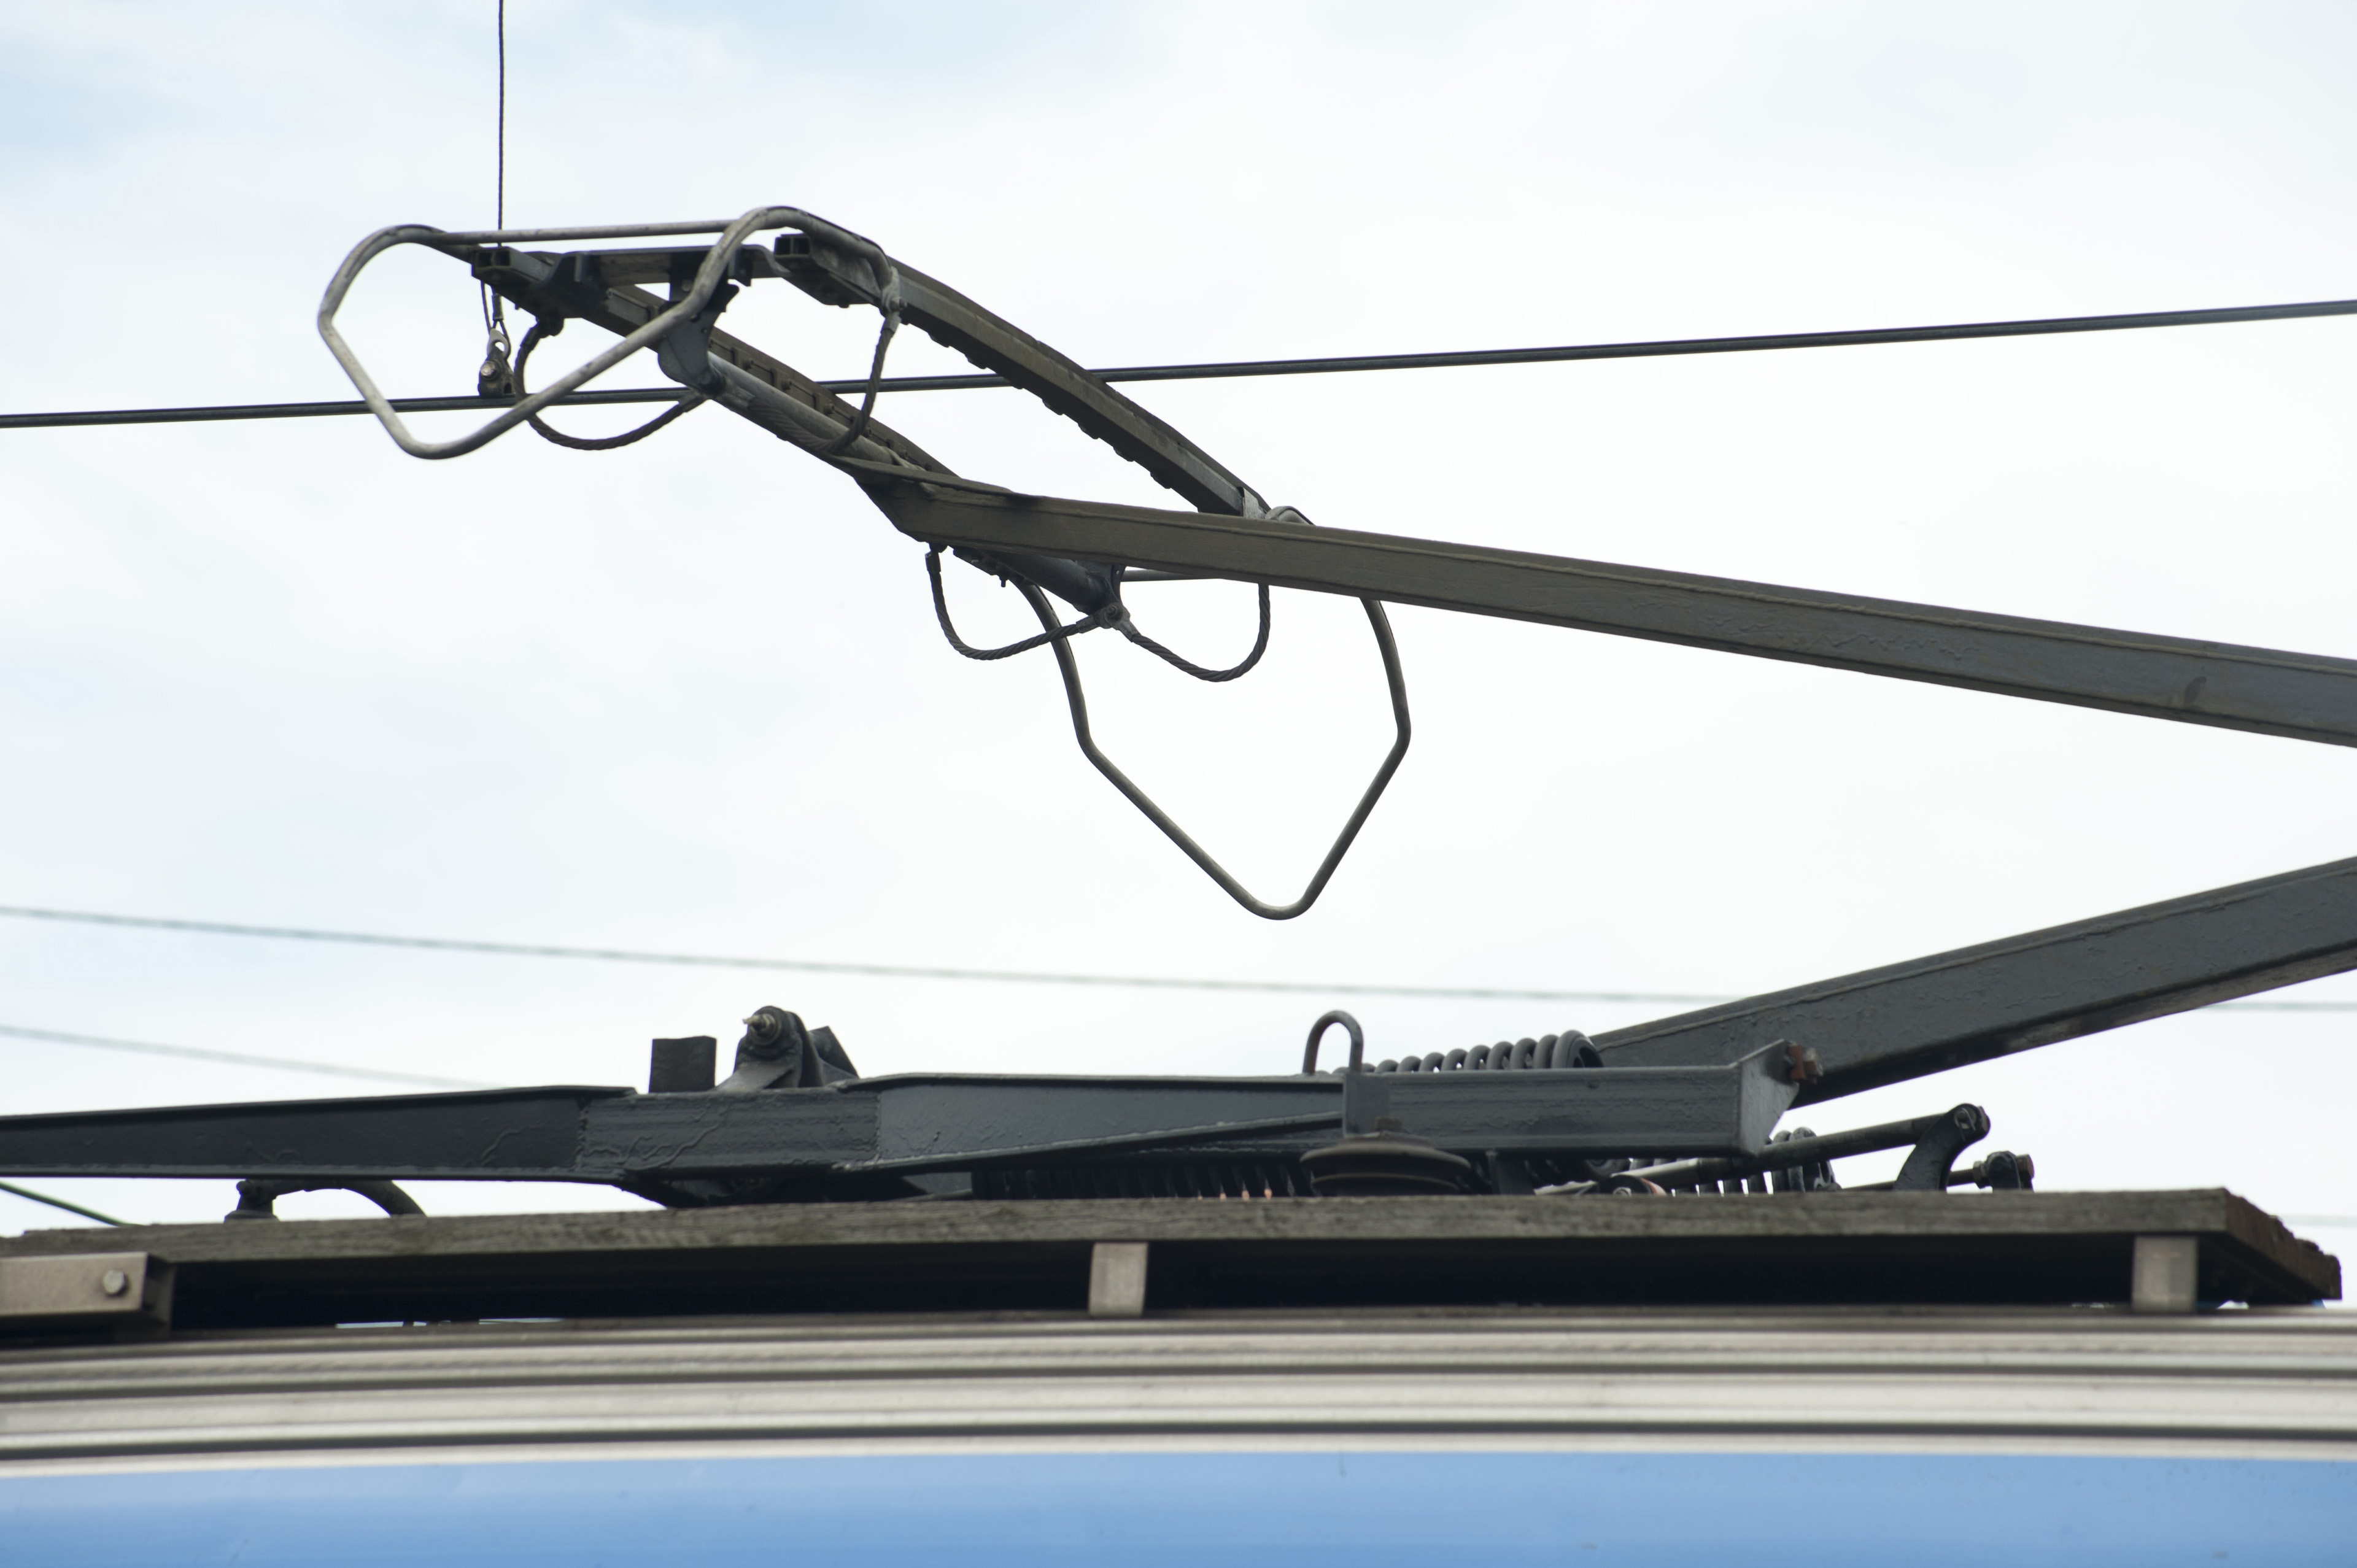 Pantograph on top of on electric train or light rail